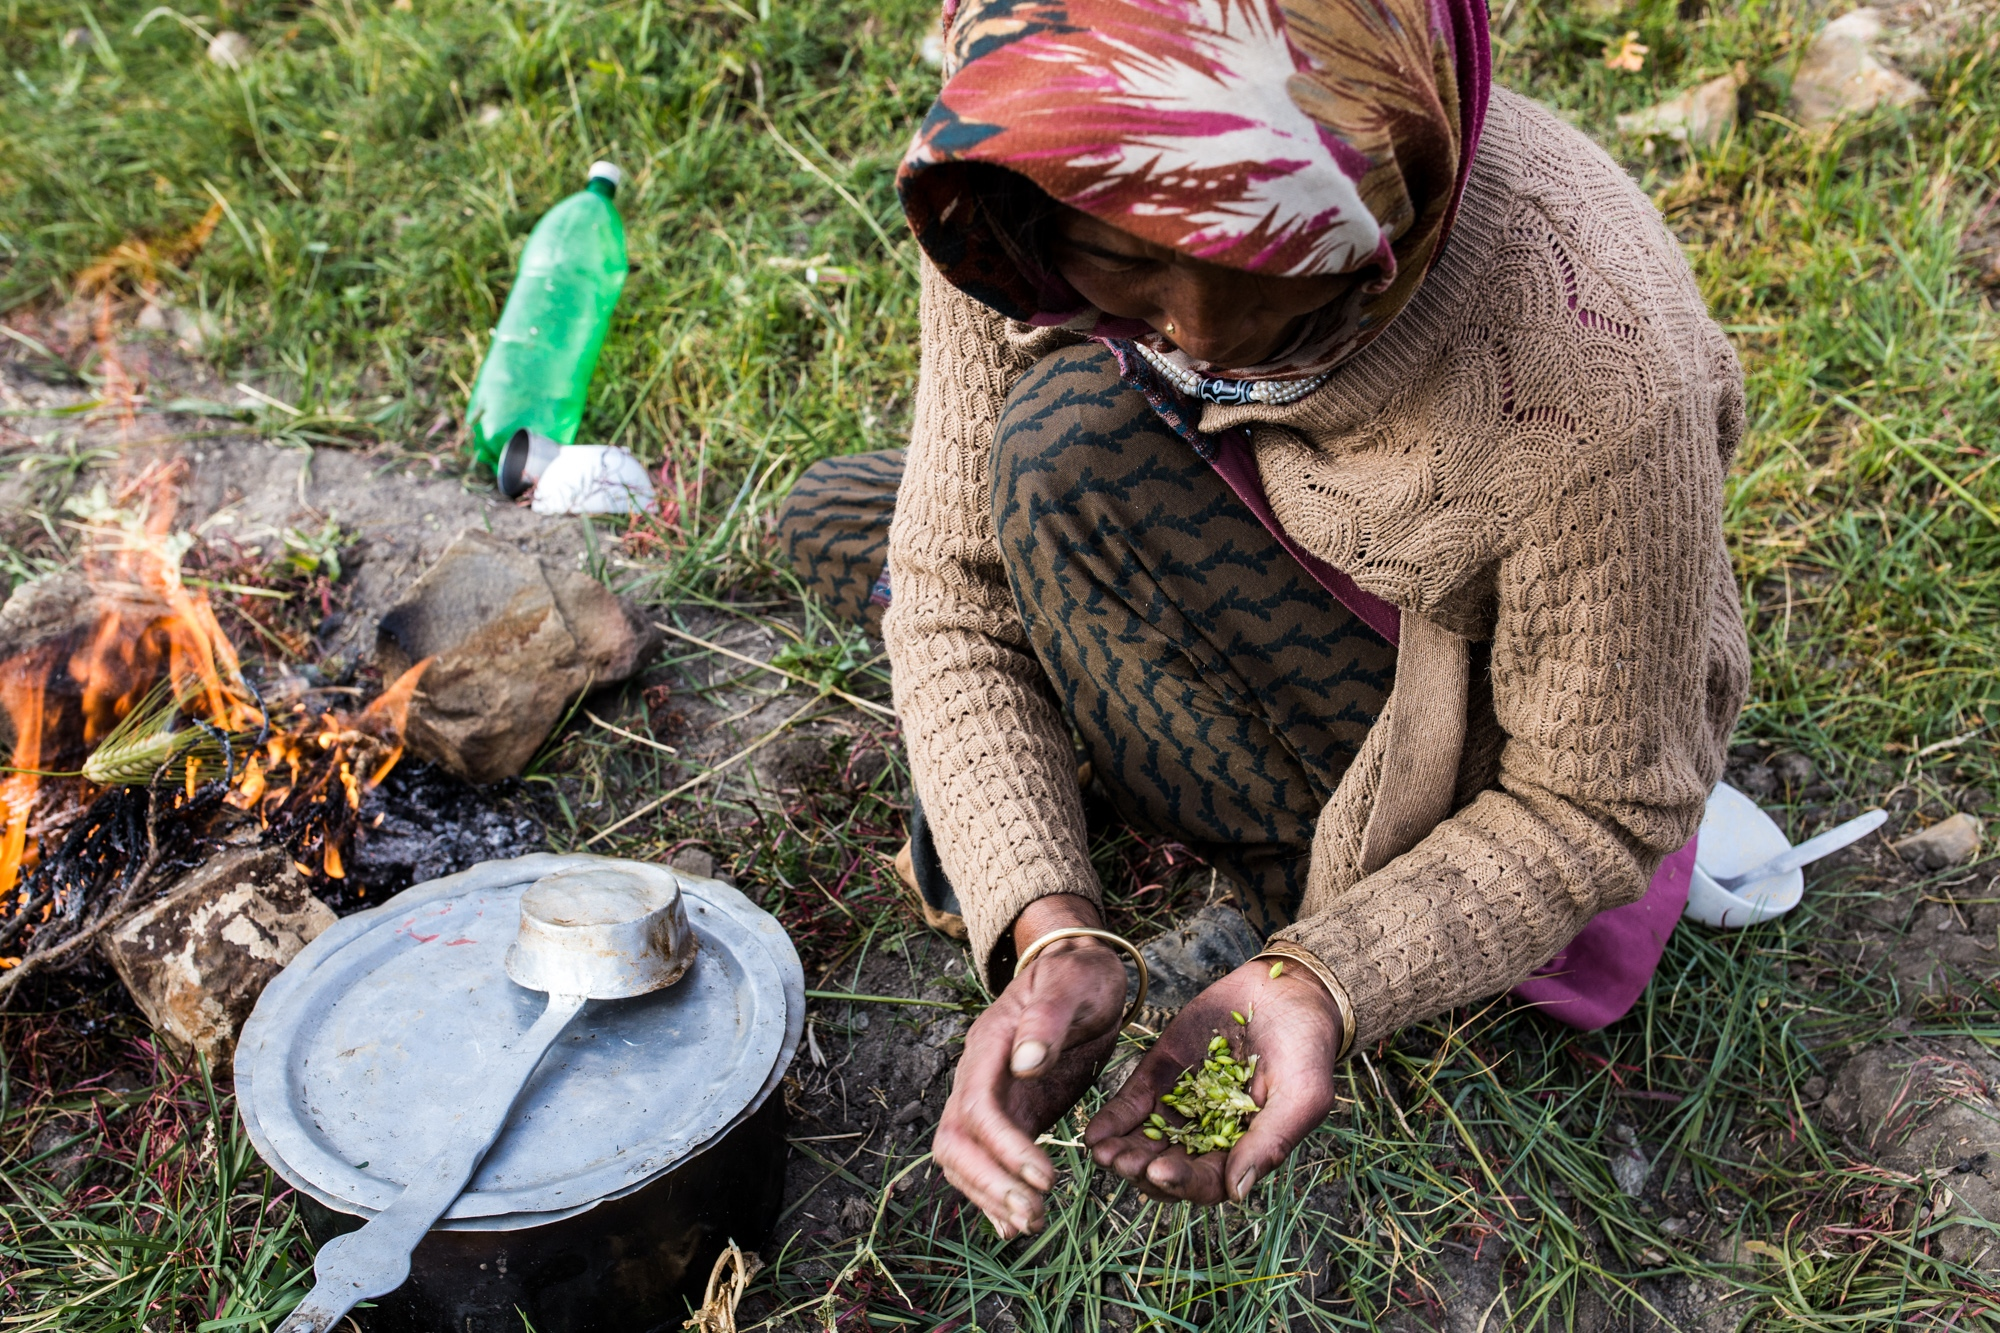 A woman roasts and presents freshly picked barley from her crops in the Indian Himalaya. Water shortages due to glacial retreat and declining snowfall are creating the foundations for food insecurity across the mountain regions of Asia.